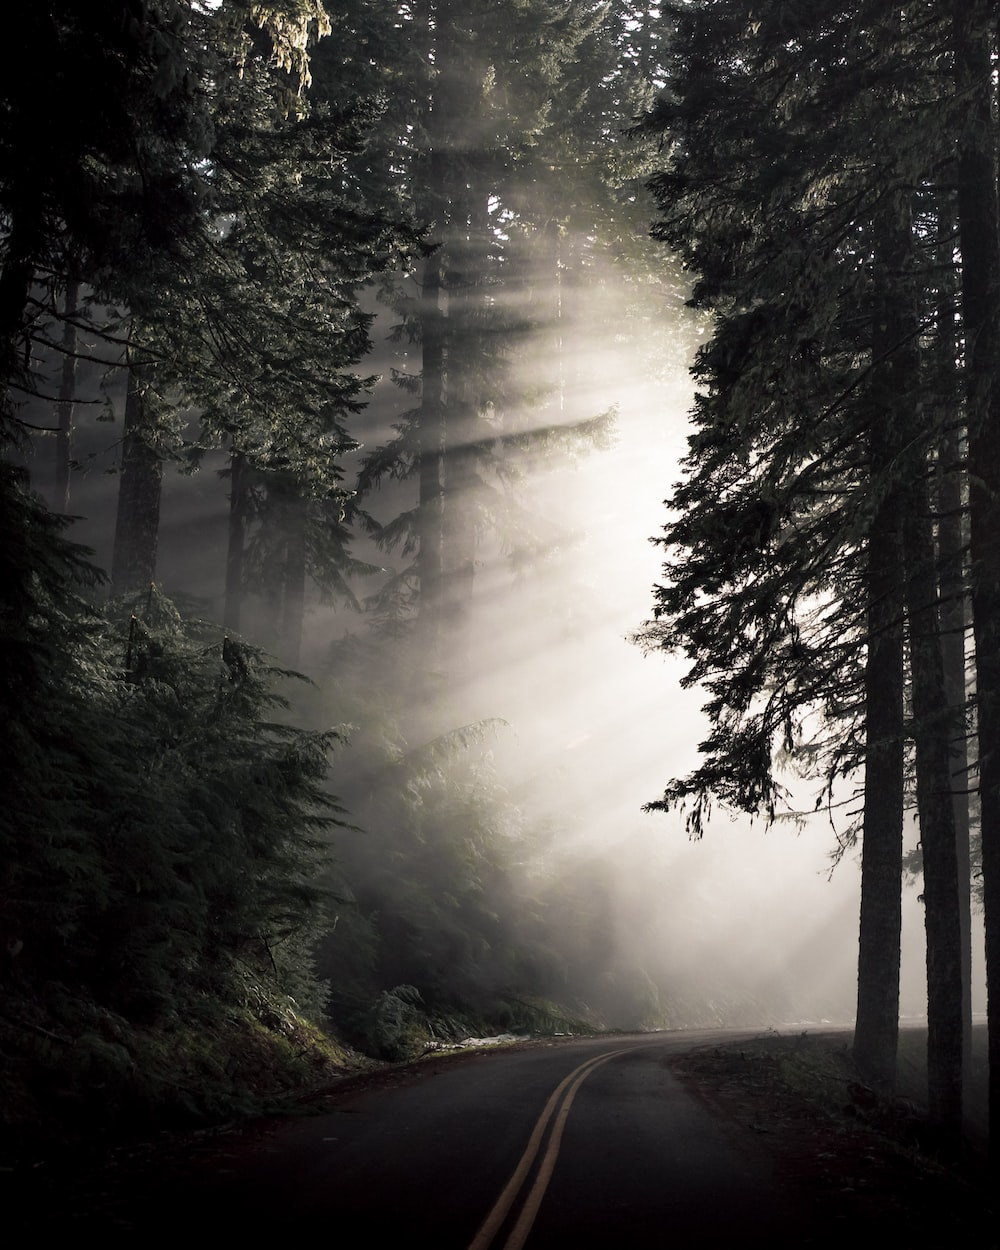 sunlight passing through thick woods along the winding road